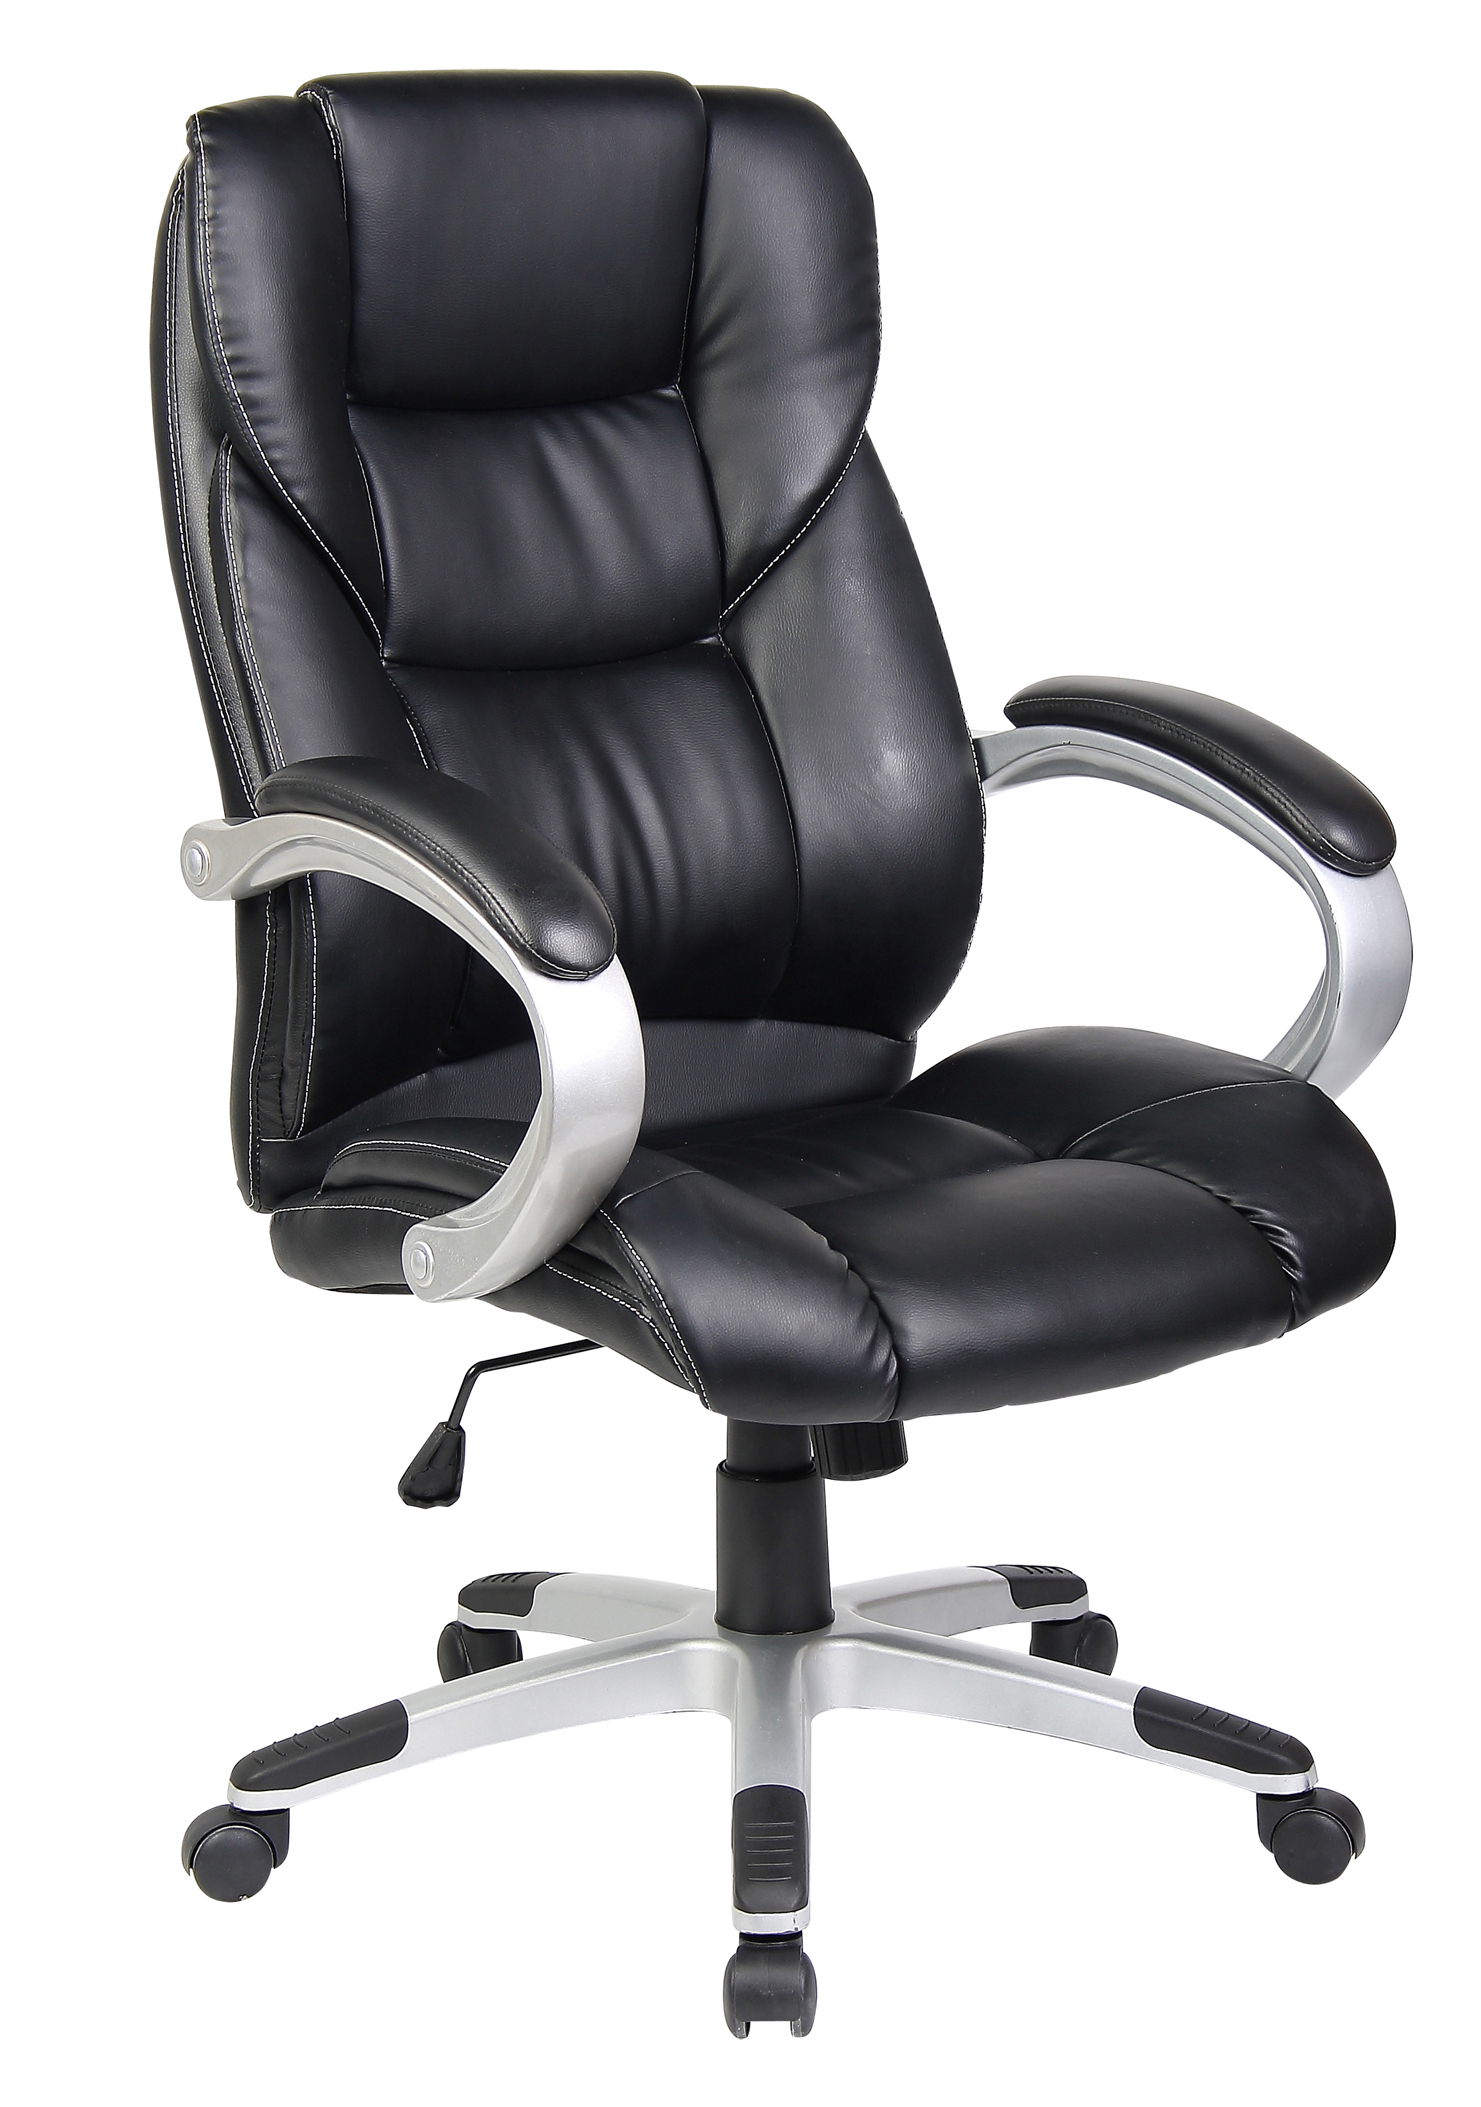 Executive Chair Quality Swivel Pu Leather Executive Office Furnitue